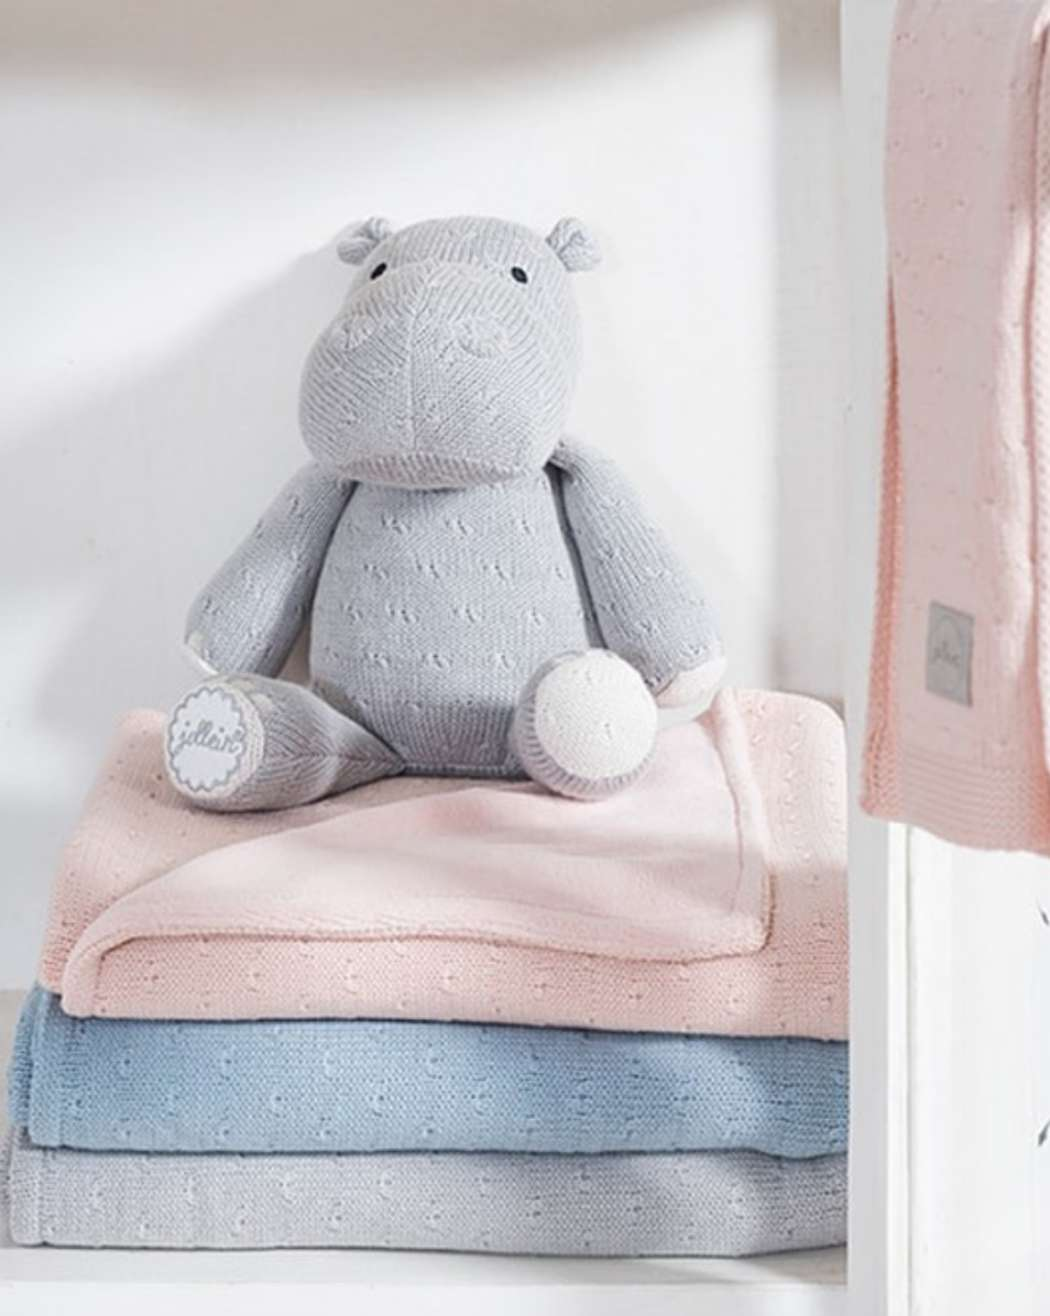 Knuffel_Soft_knit_hippo_light_grey_soft_knit_deken_64bd4213-7a86-4d67-9a59-53410c3811bd